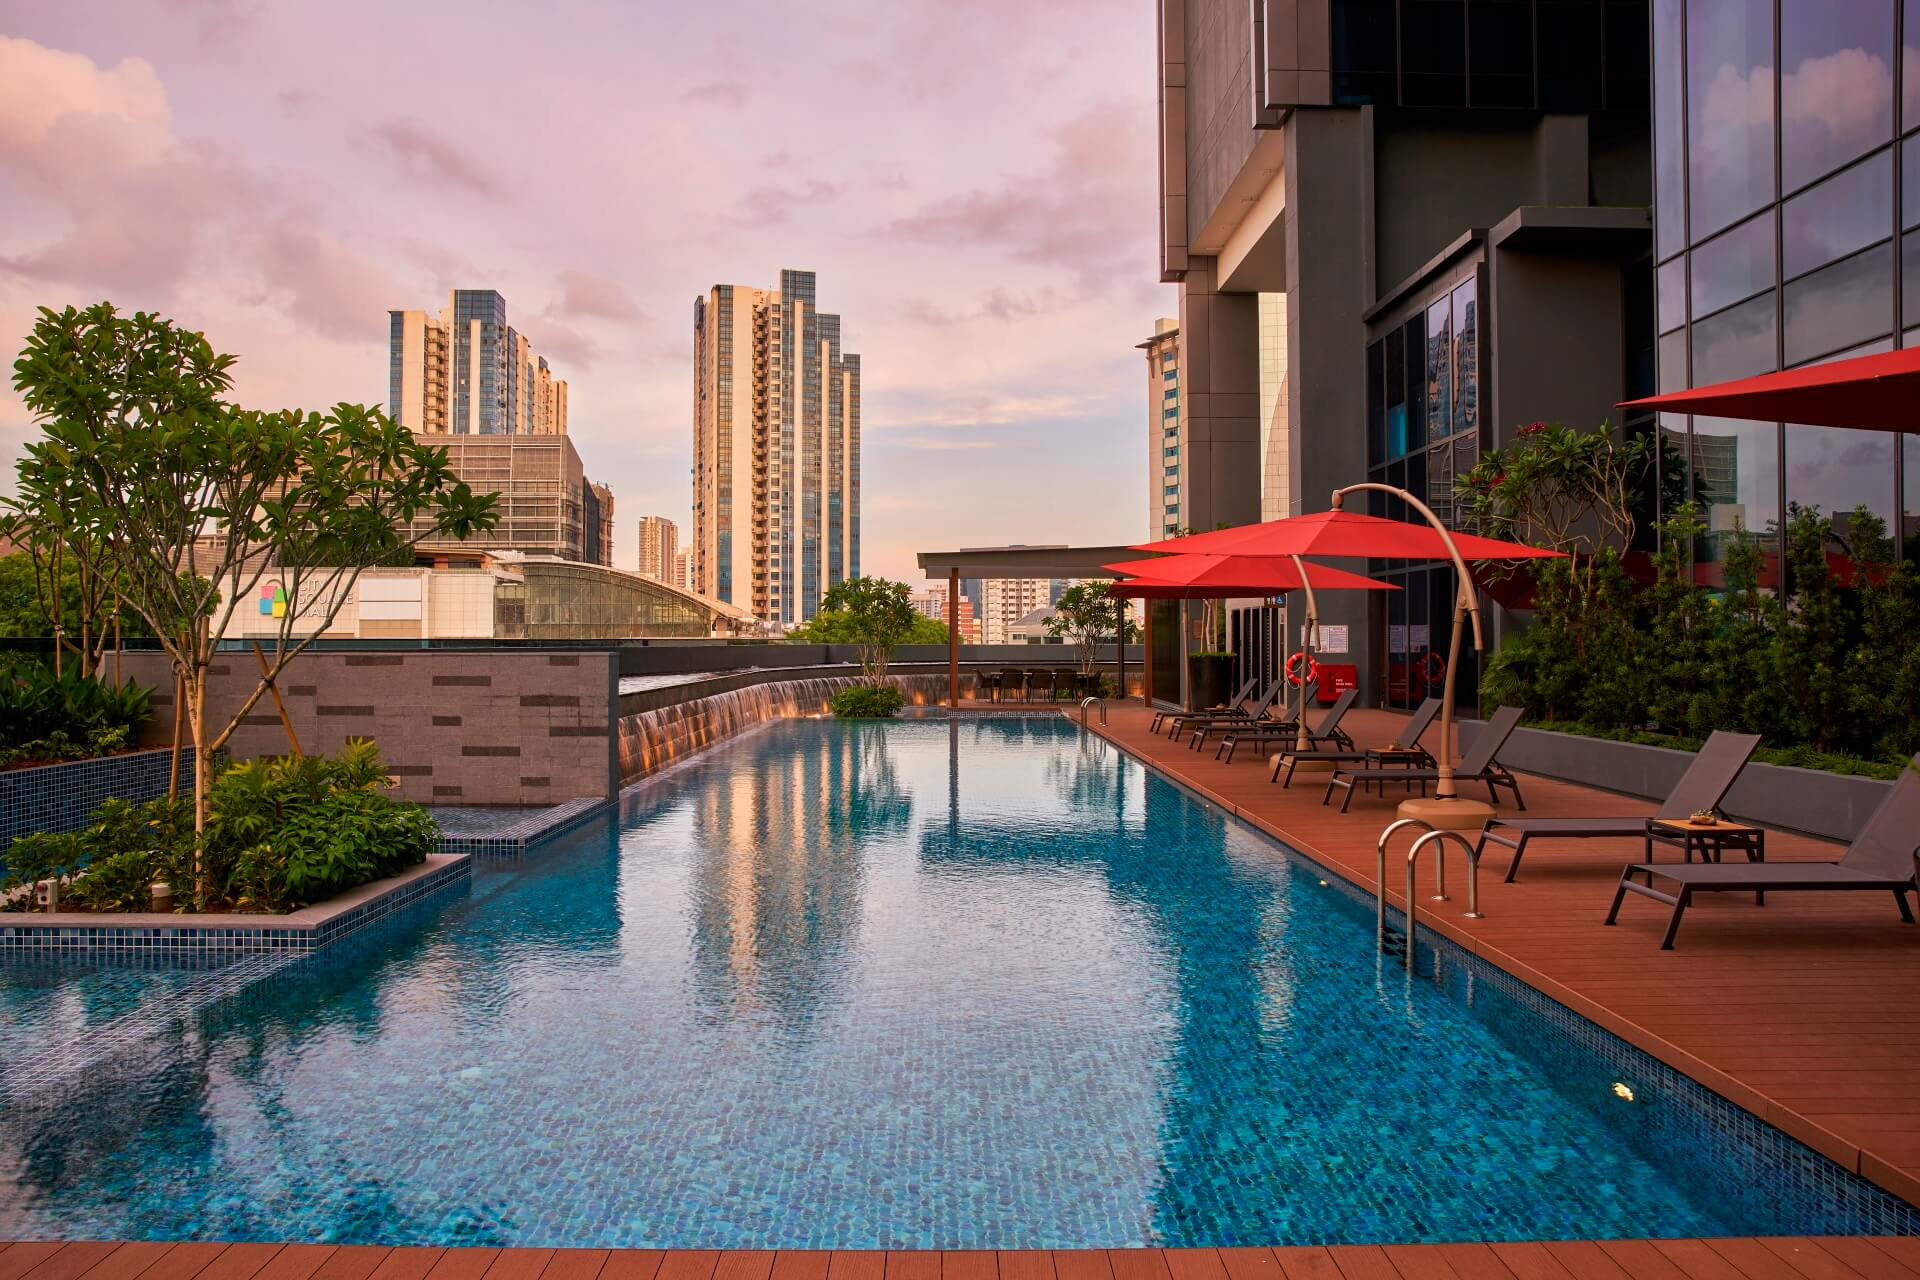 Park Hotel Farrer Park Singapore, located in Little India directly above MRT Station